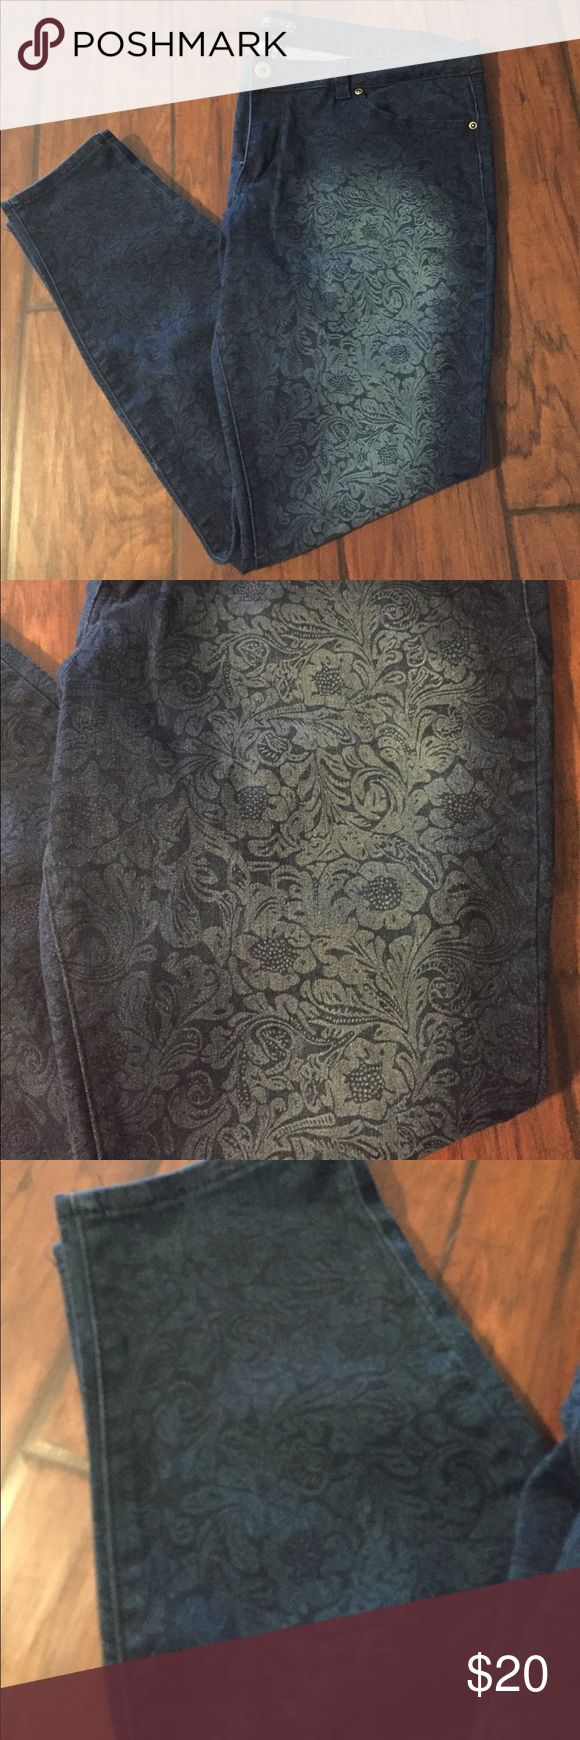 Floral Print Skinny Jeans Used but still in great condition. Floral print stretch skinny jeans. Forever 21 Jeans Skinny